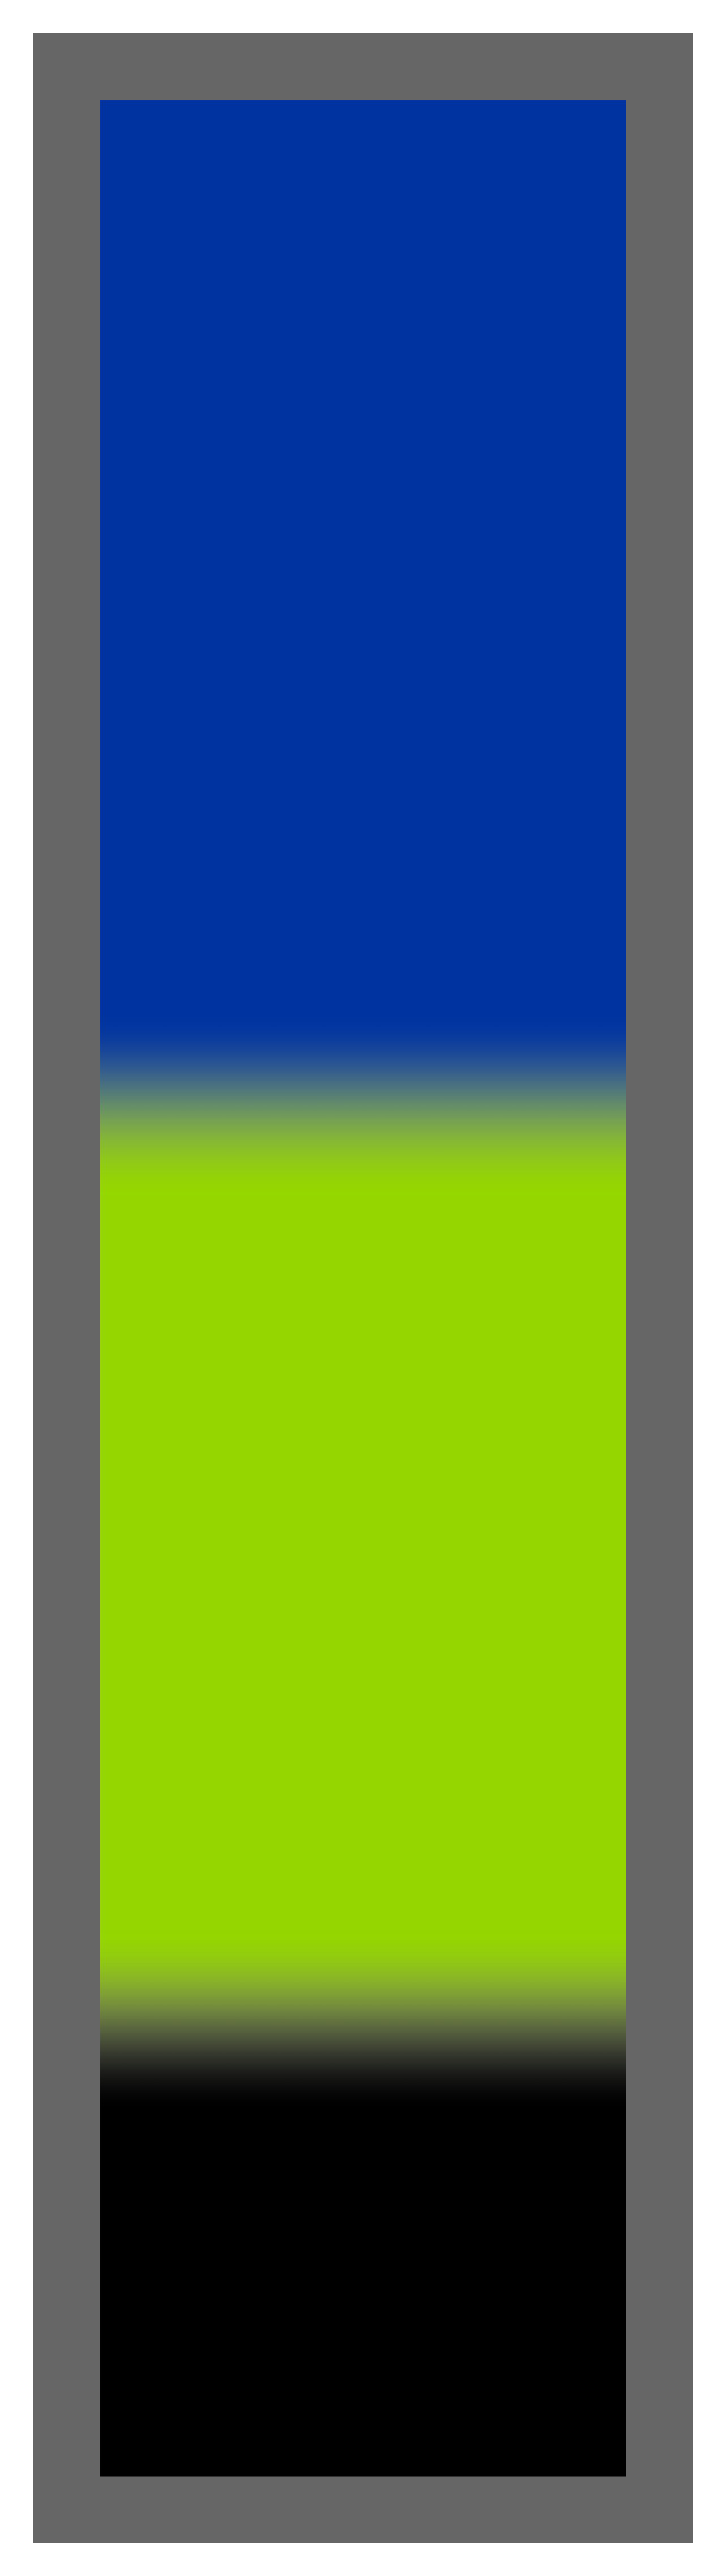 Royal Blue-Lime Green-Black Ombre